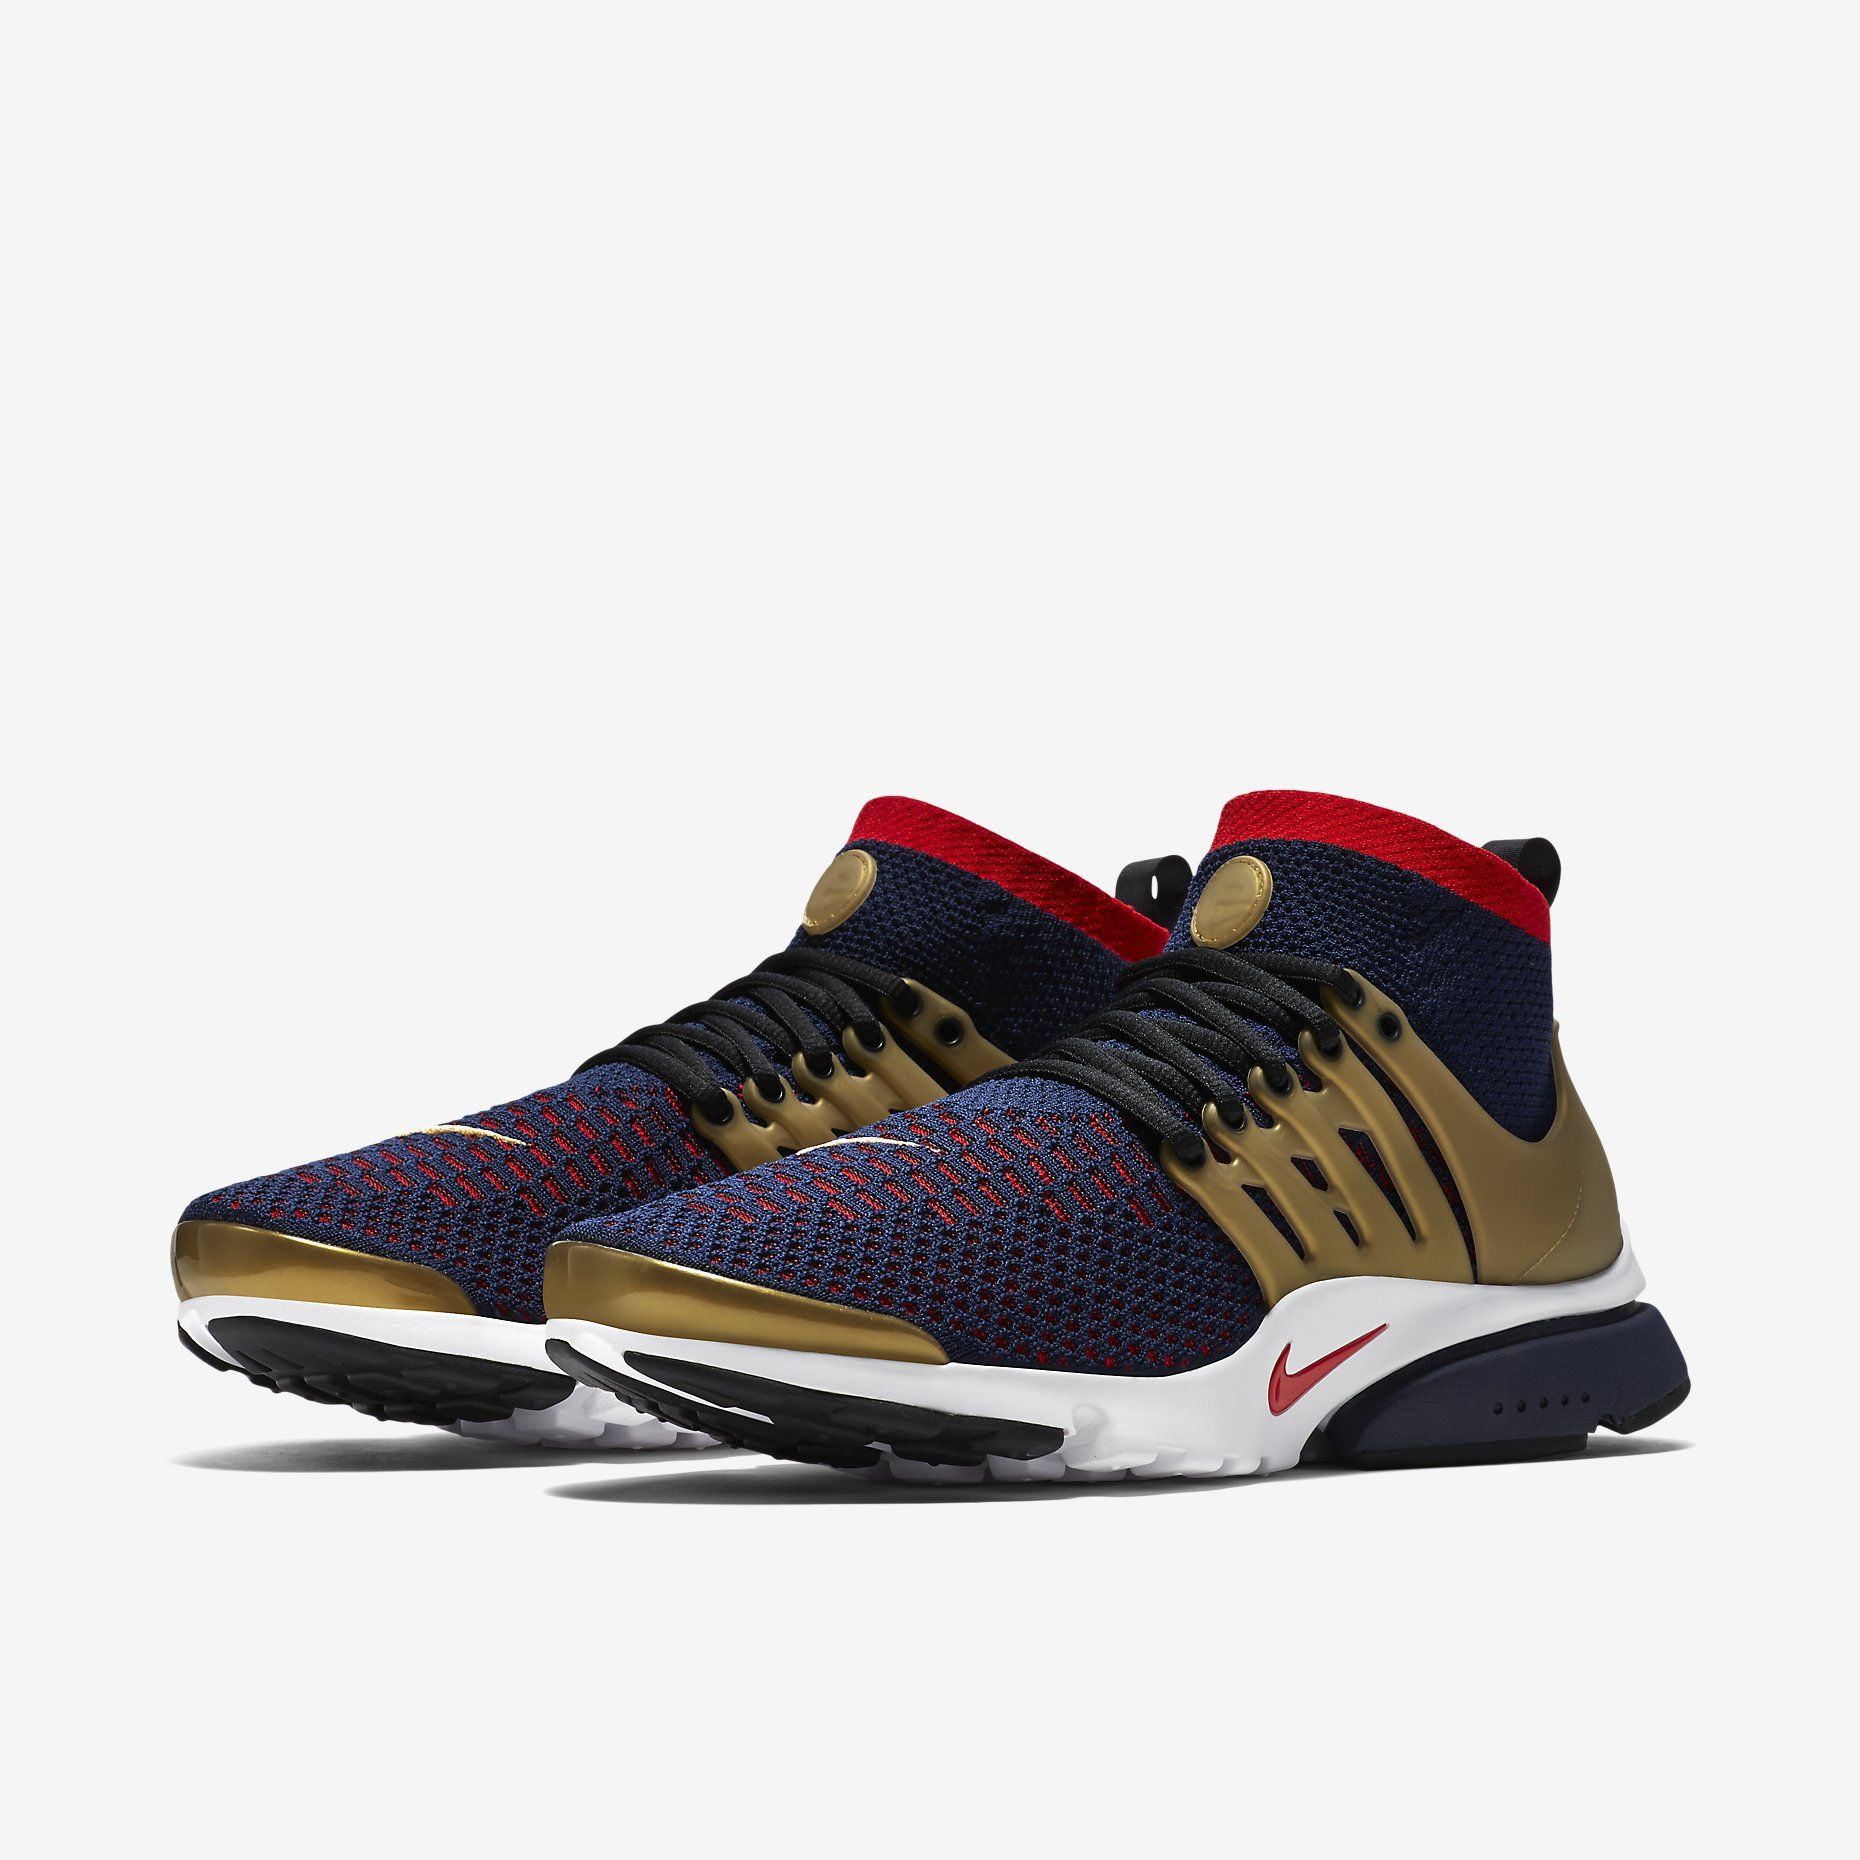 Nike Air Presto Ultra Flyknit (College Navy/Metallic Gold/White/Comet Red